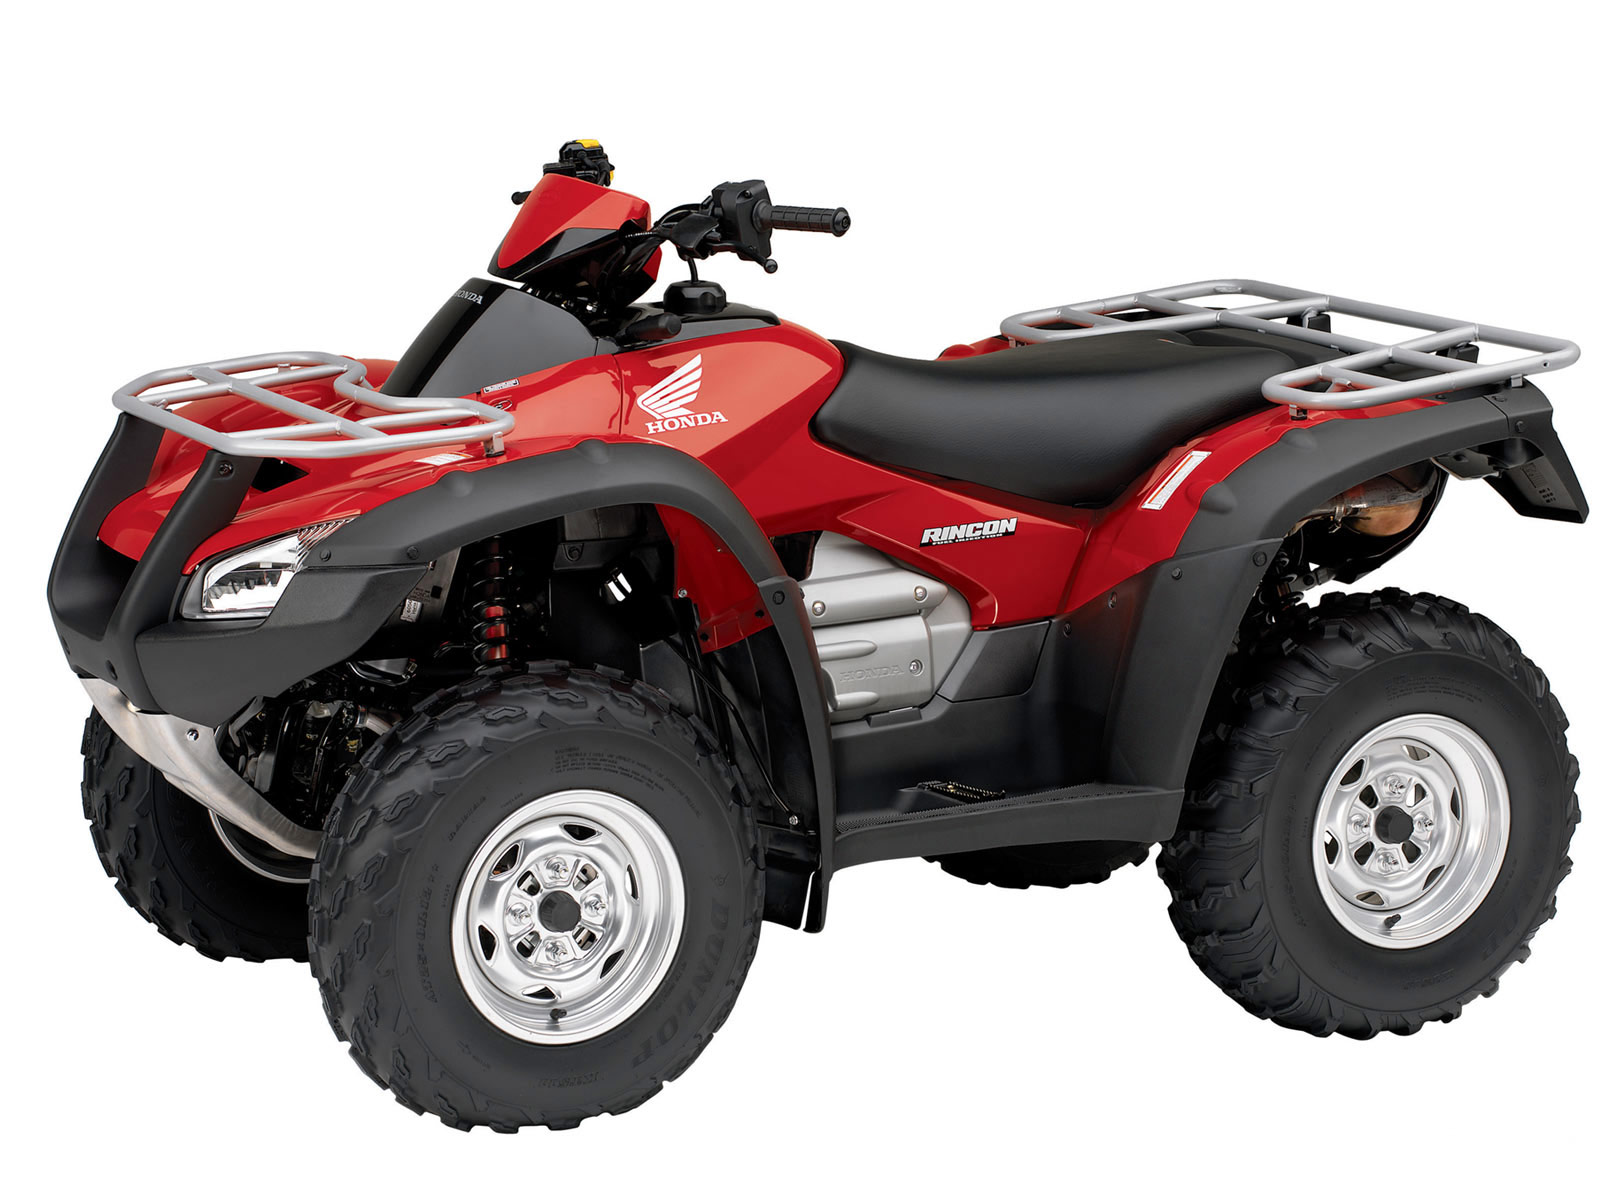 2006 HONDA FourTrax Rincon ATV wallpapers 1600x1200